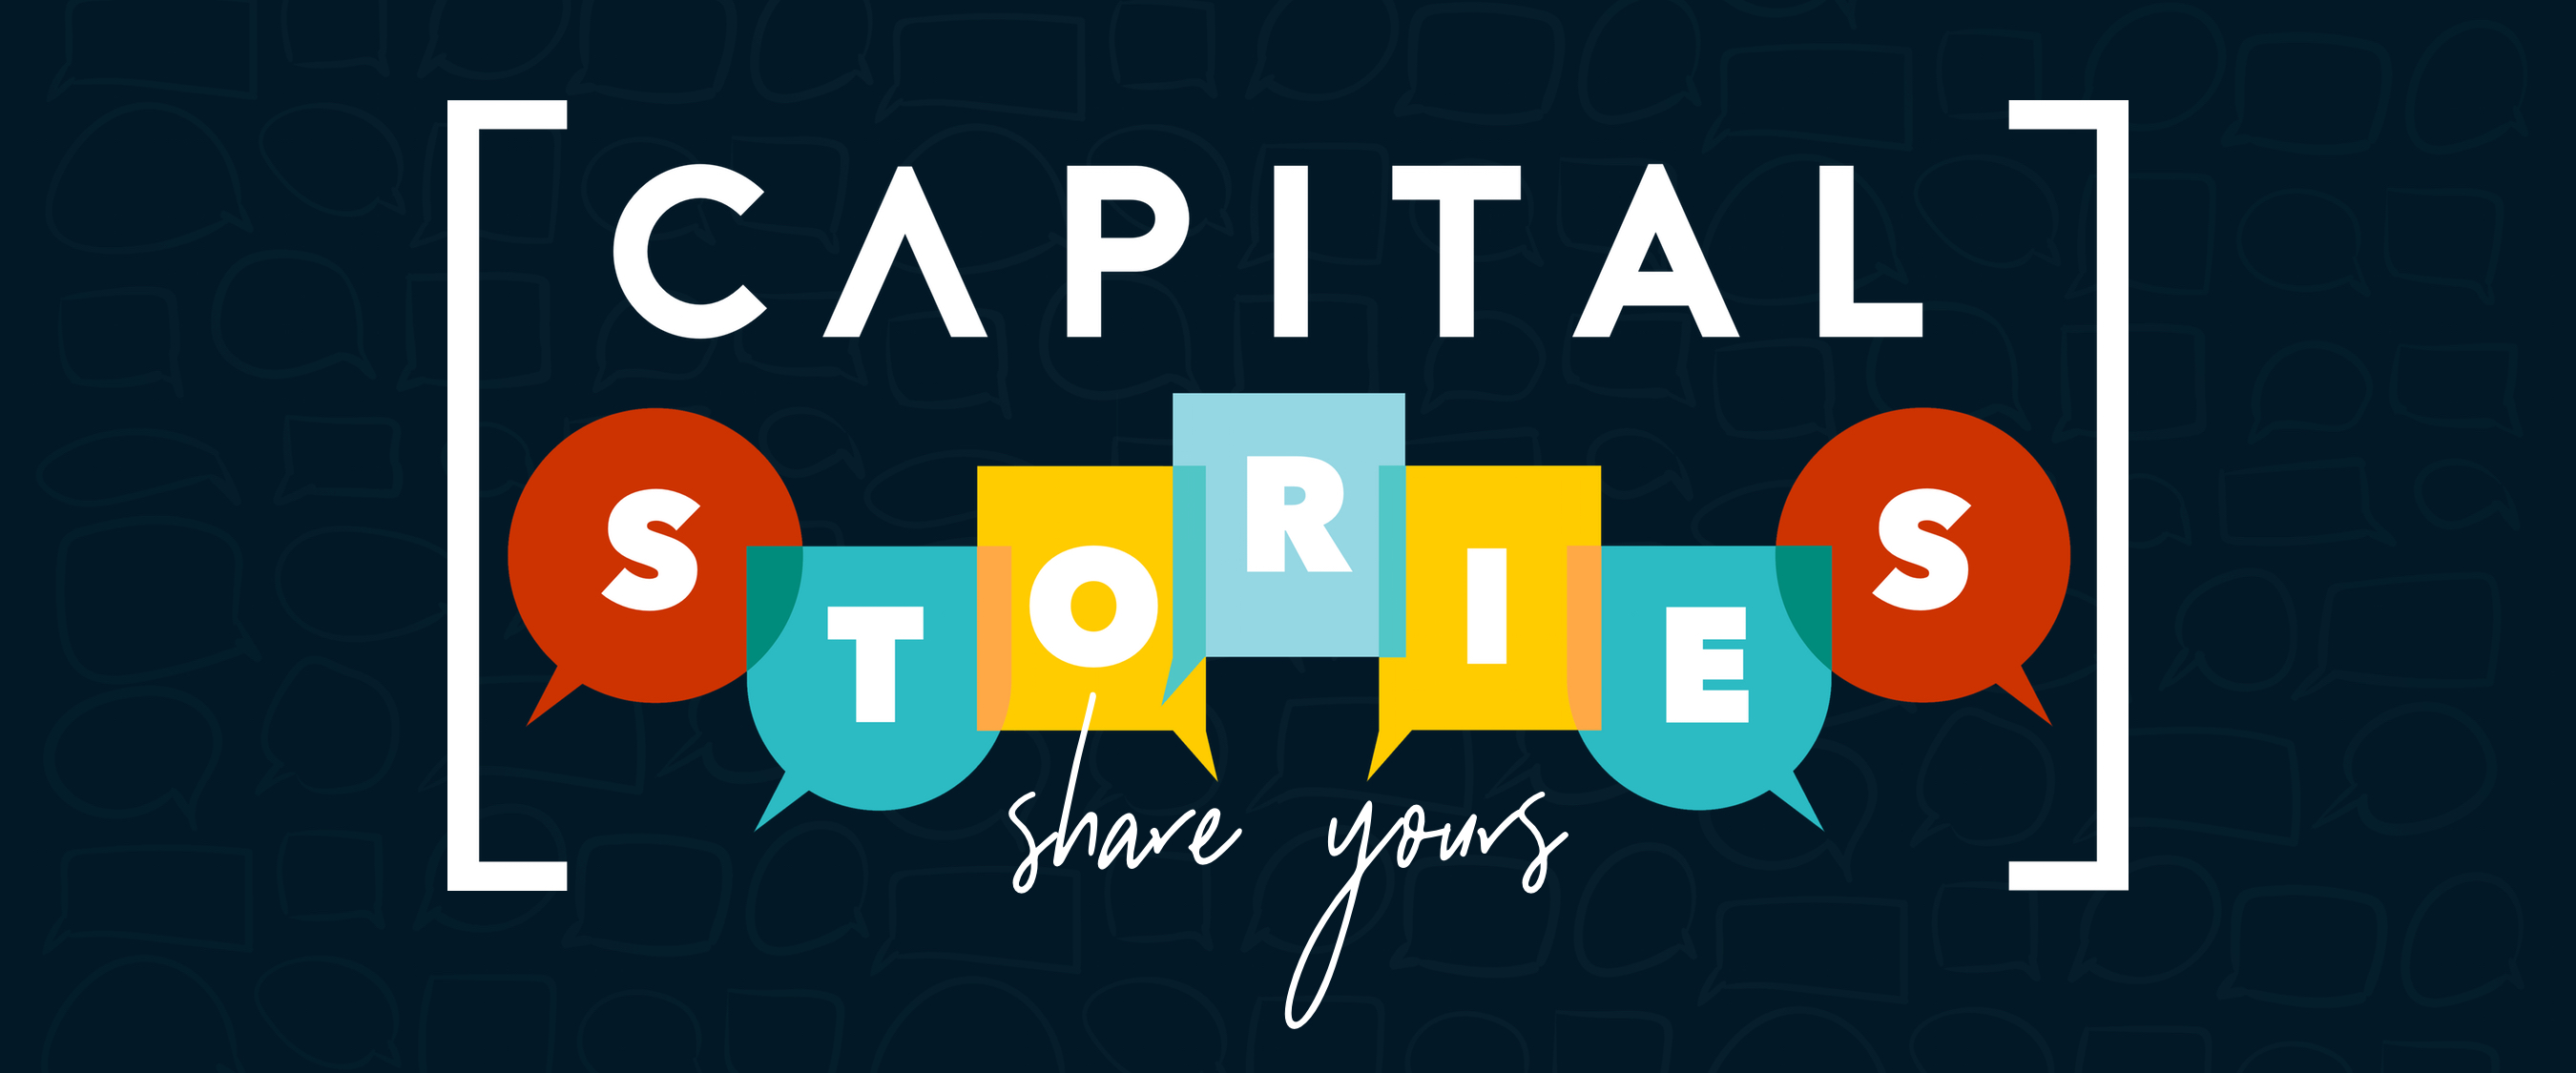 Capital Stories Slider